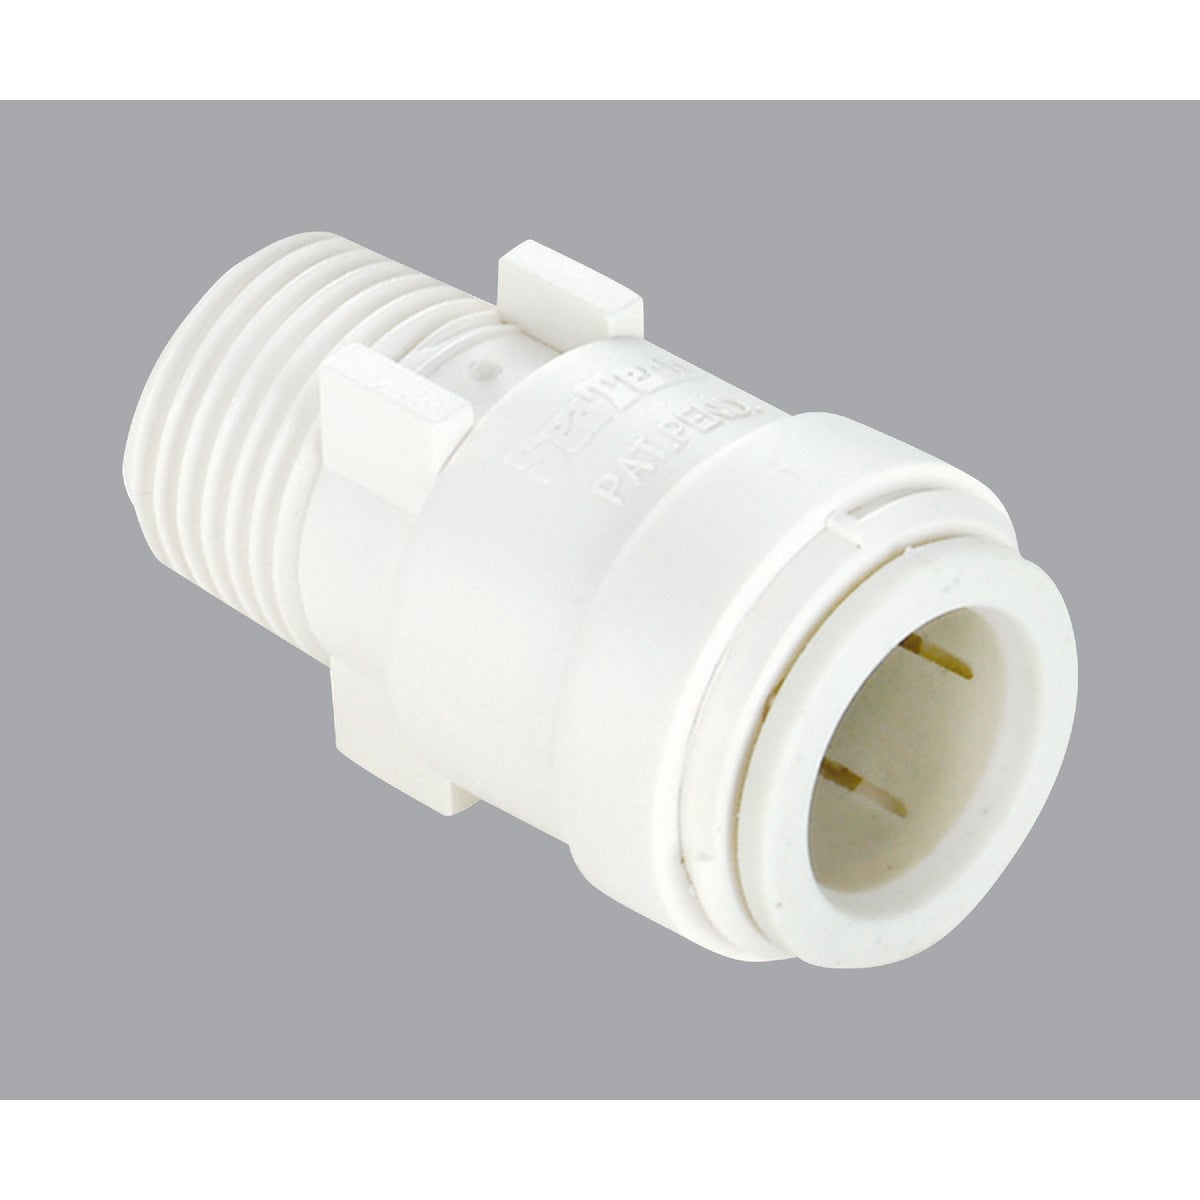 1/2CTSX3/4MPT ADAPTER - P-613 by Watts Pex